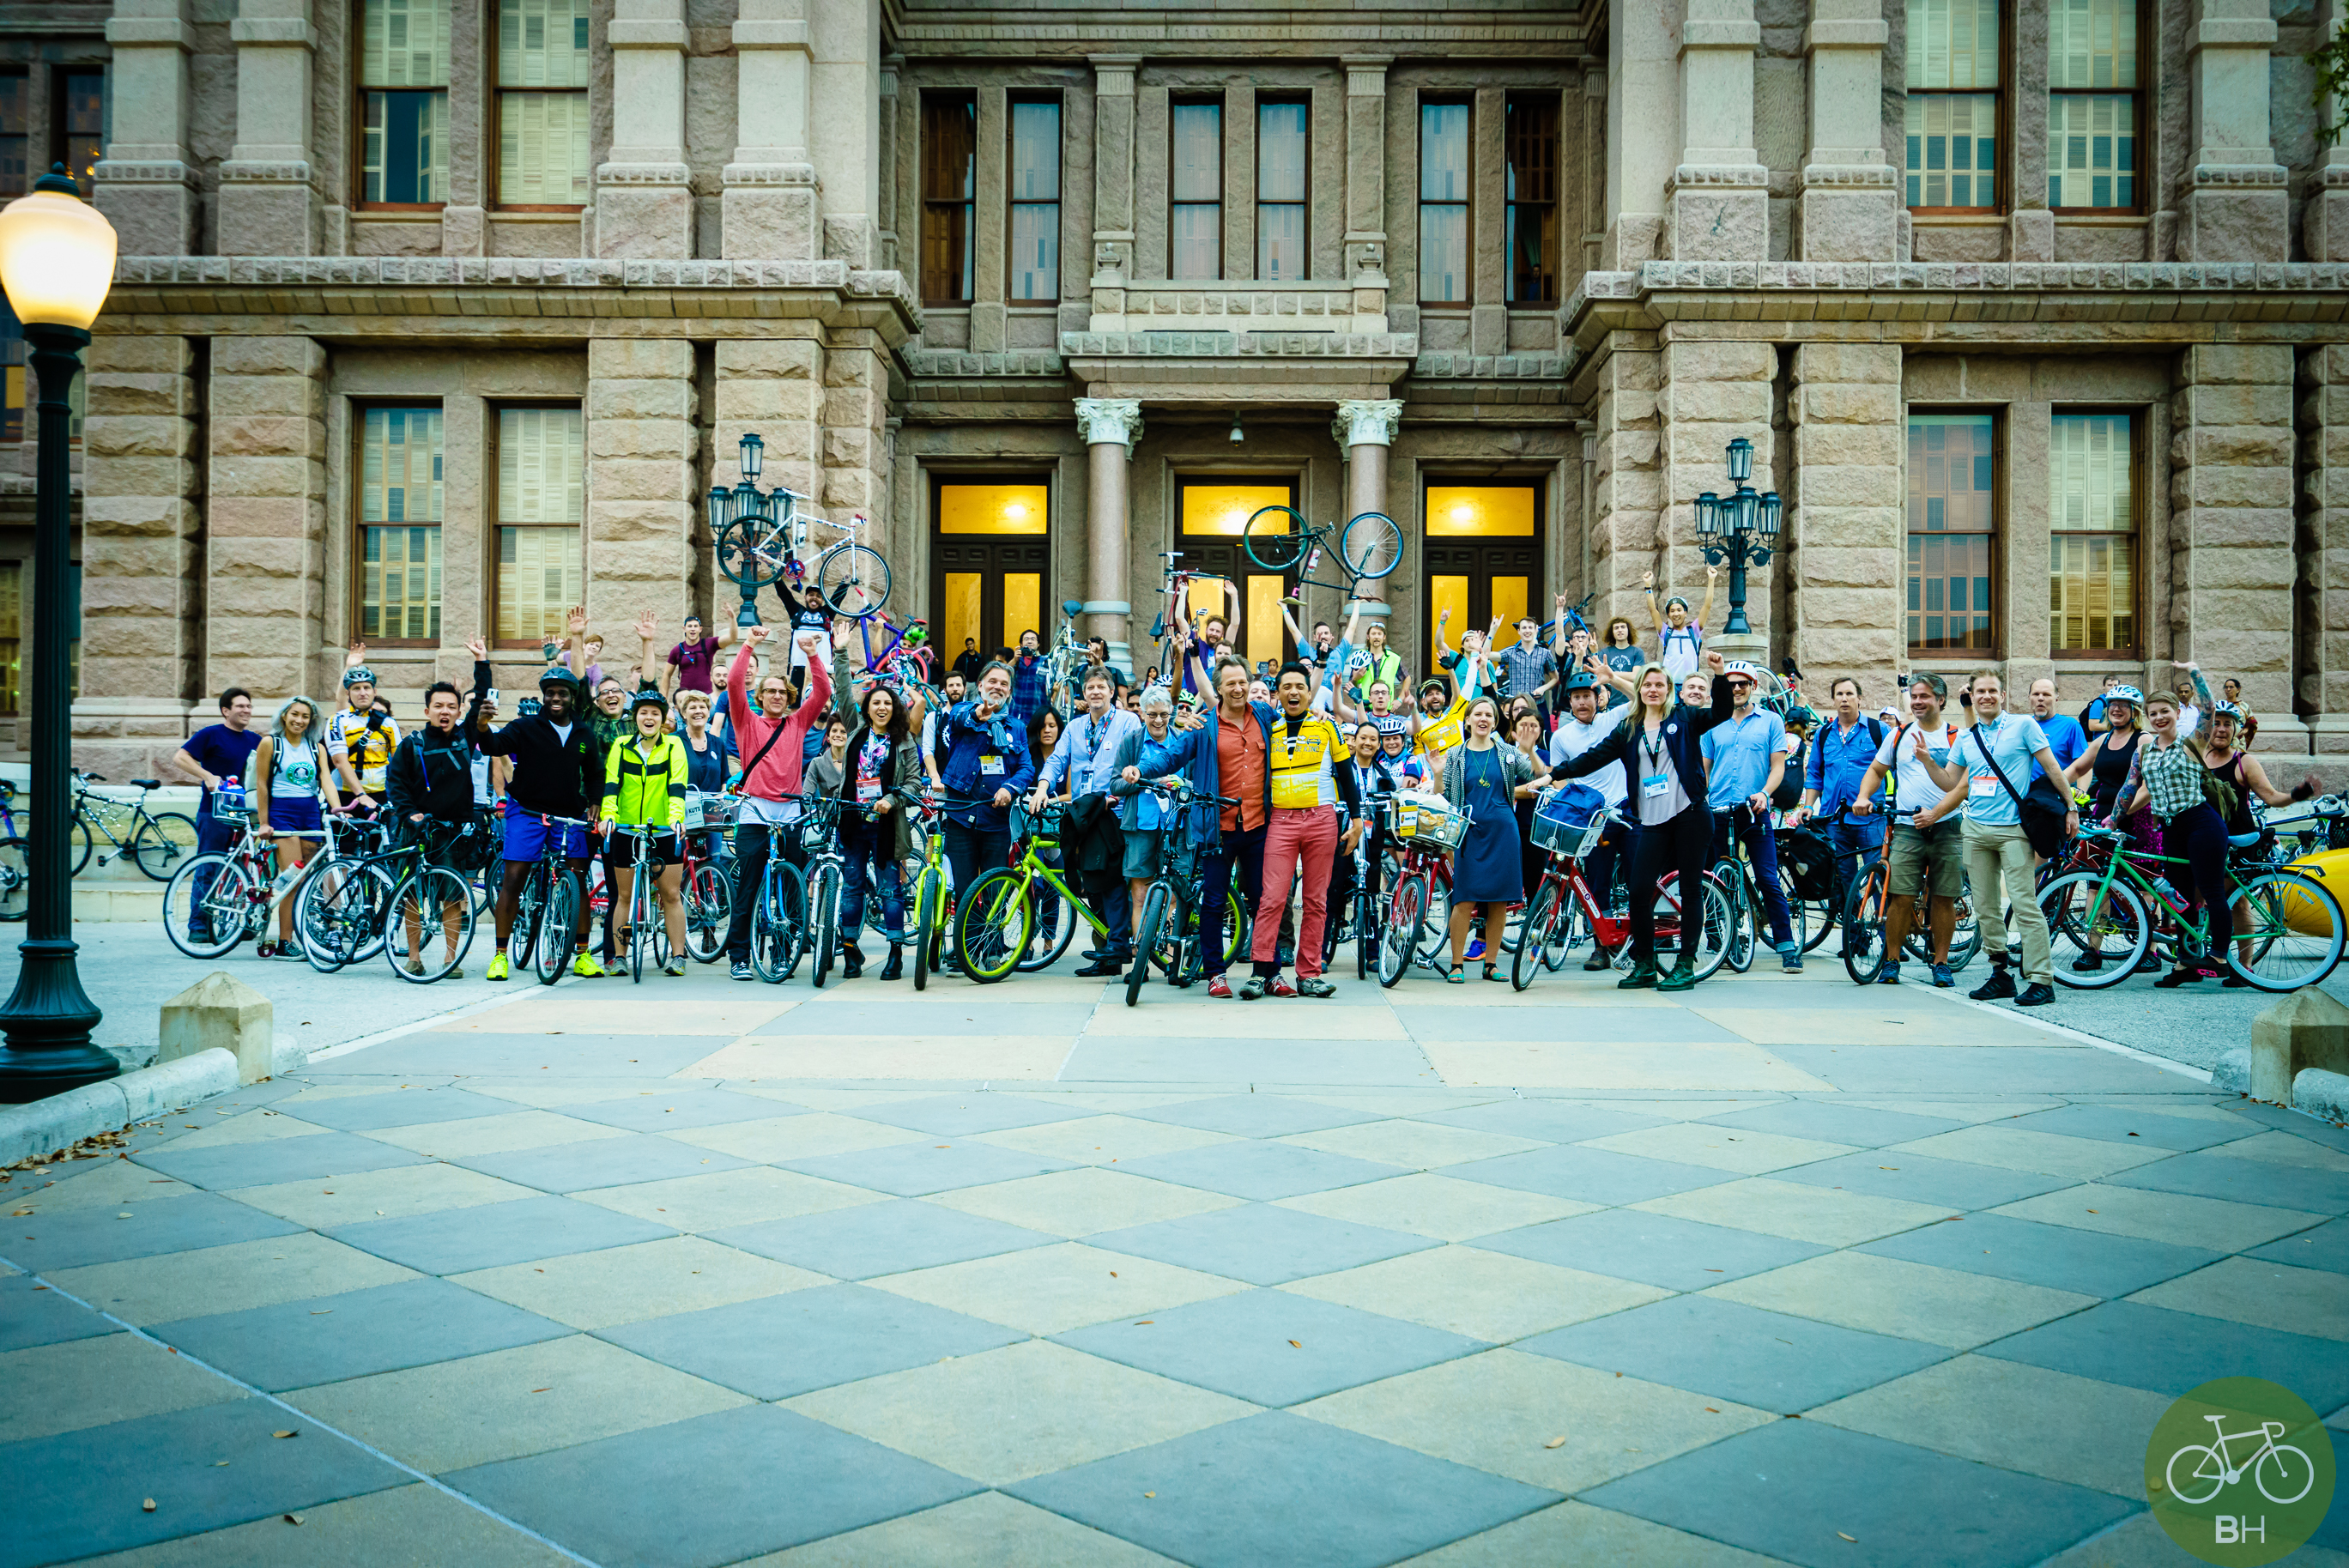 SXSW Bike Hugger Meet-Up before our world premiere. photo cred: Bike Hugger